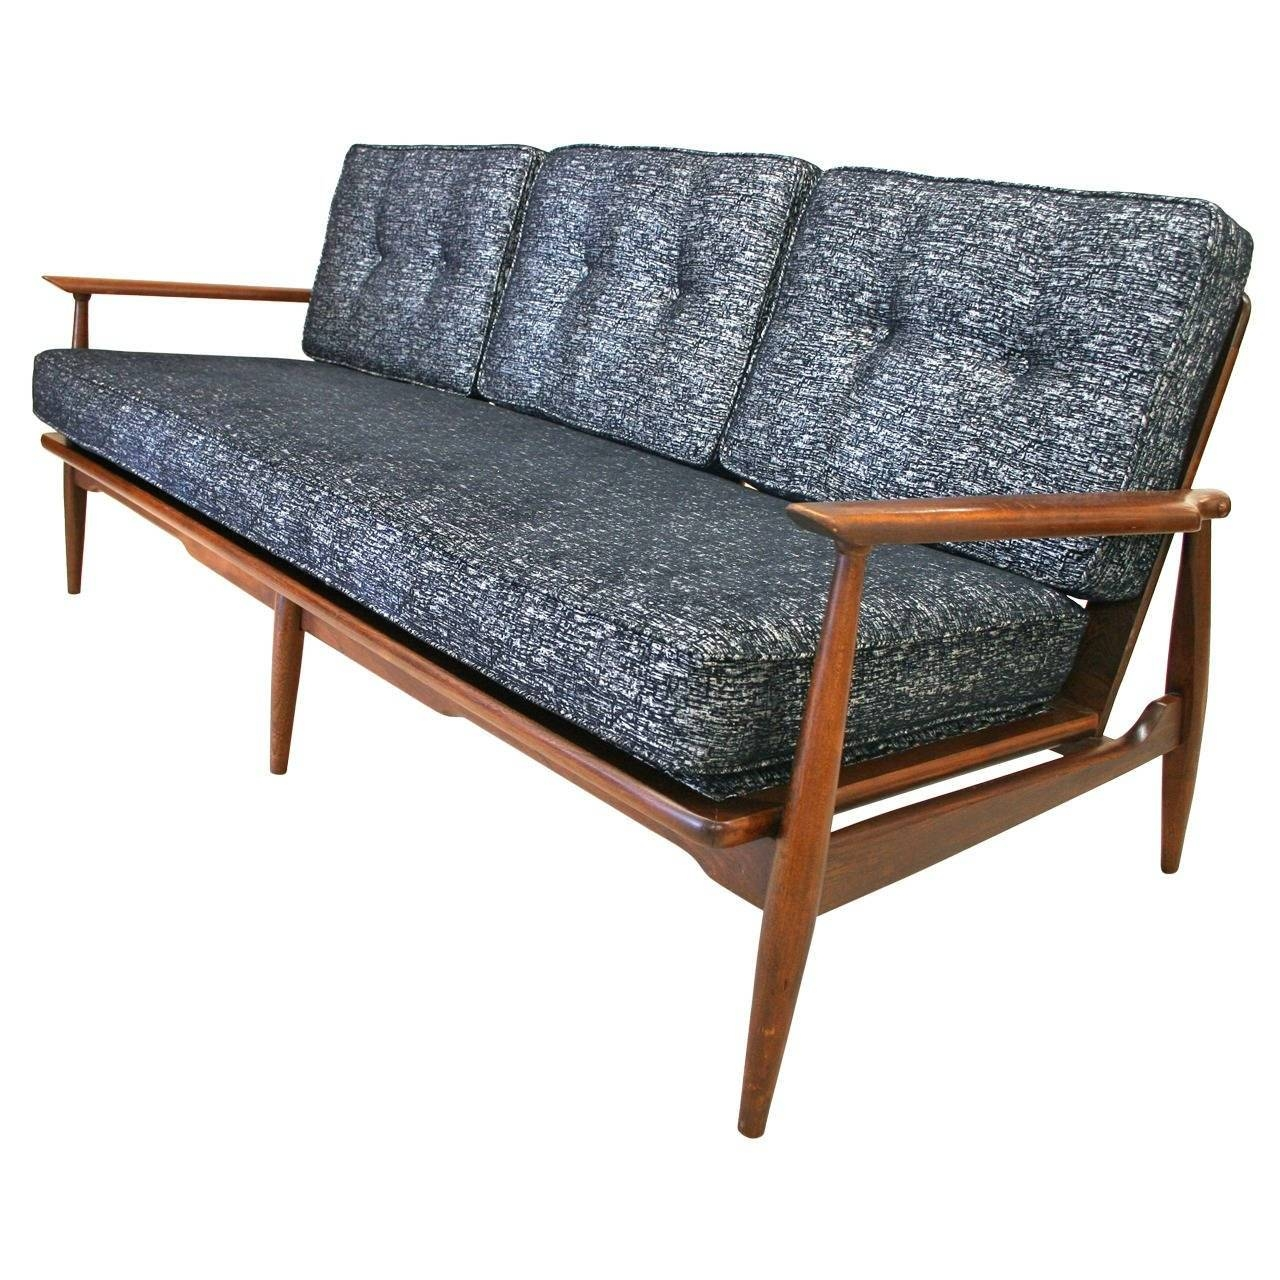 Mid-Century Modern Danish Sofa With Walnut Frame And New intended for Modern Danish Sofas (Image 10 of 15)